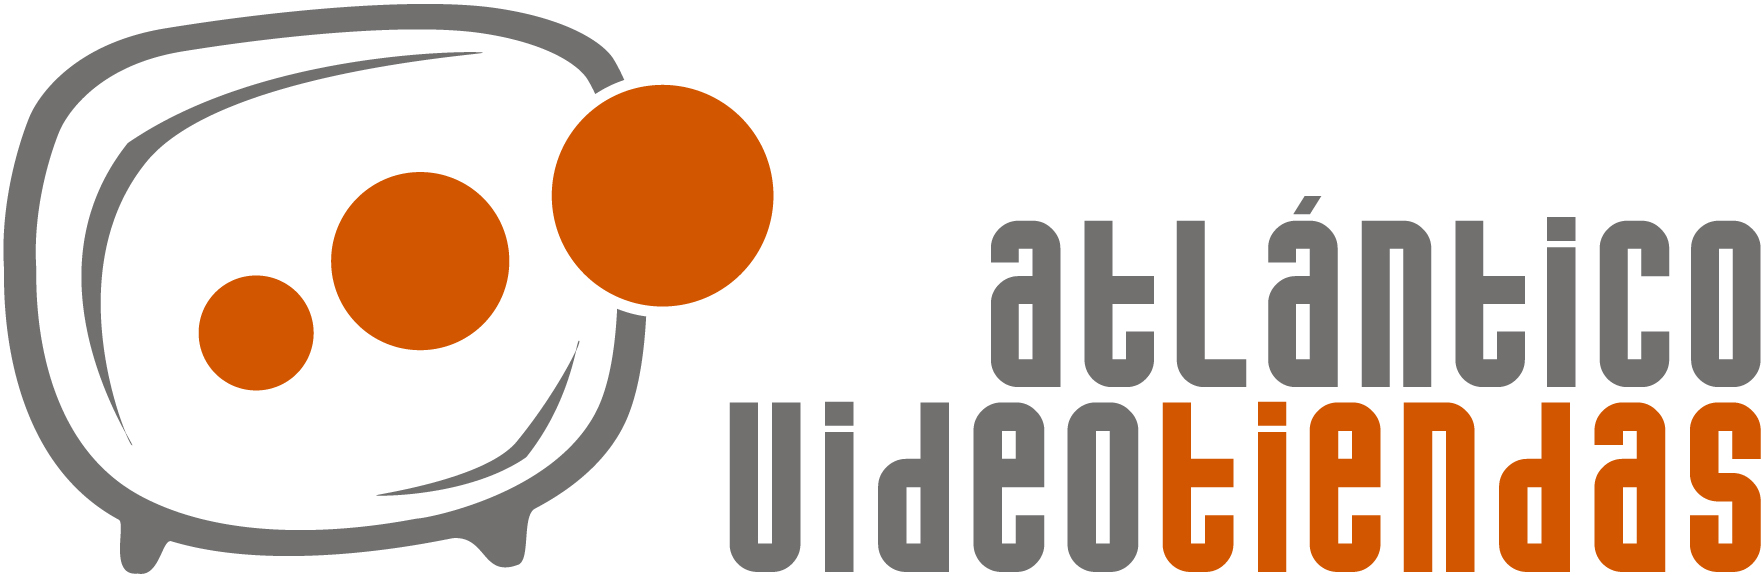 logo atlantico v2 color